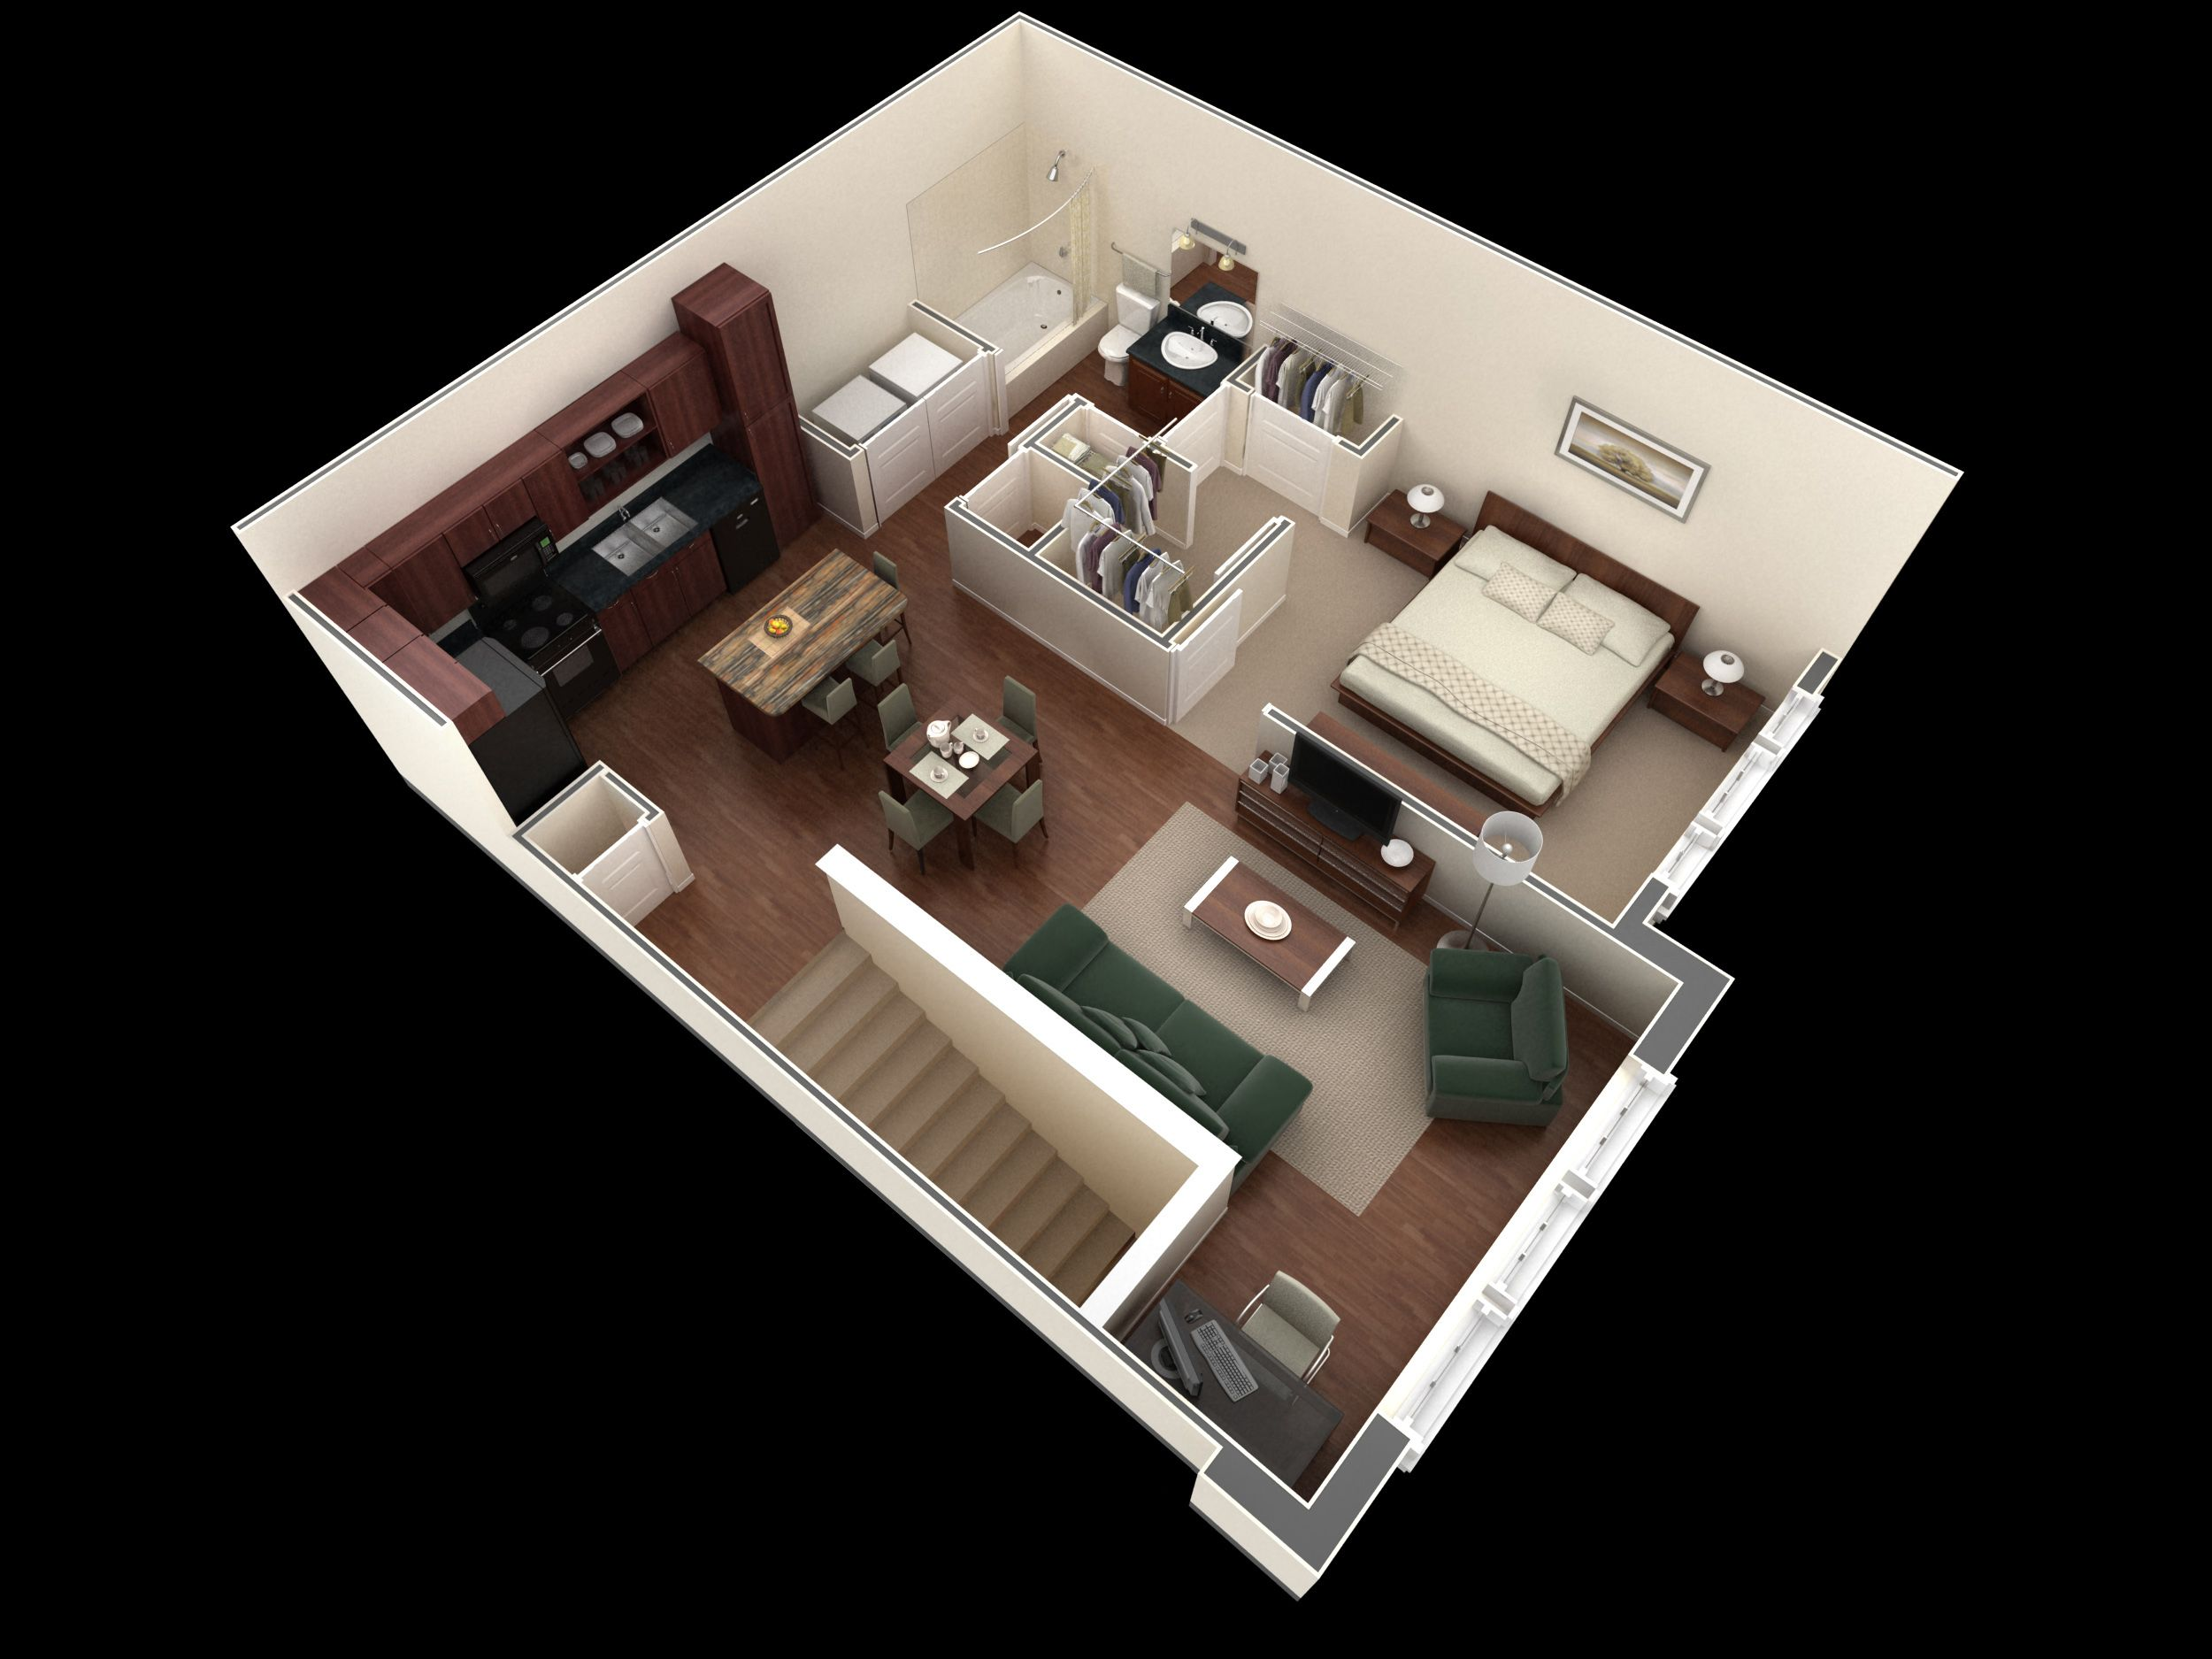 One Bedroom Apartment Plans And Designs Glamorous 1 Bedroom Apartment  Designer Overlook This 1 Bedroom 1 Bath Decorating Inspiration